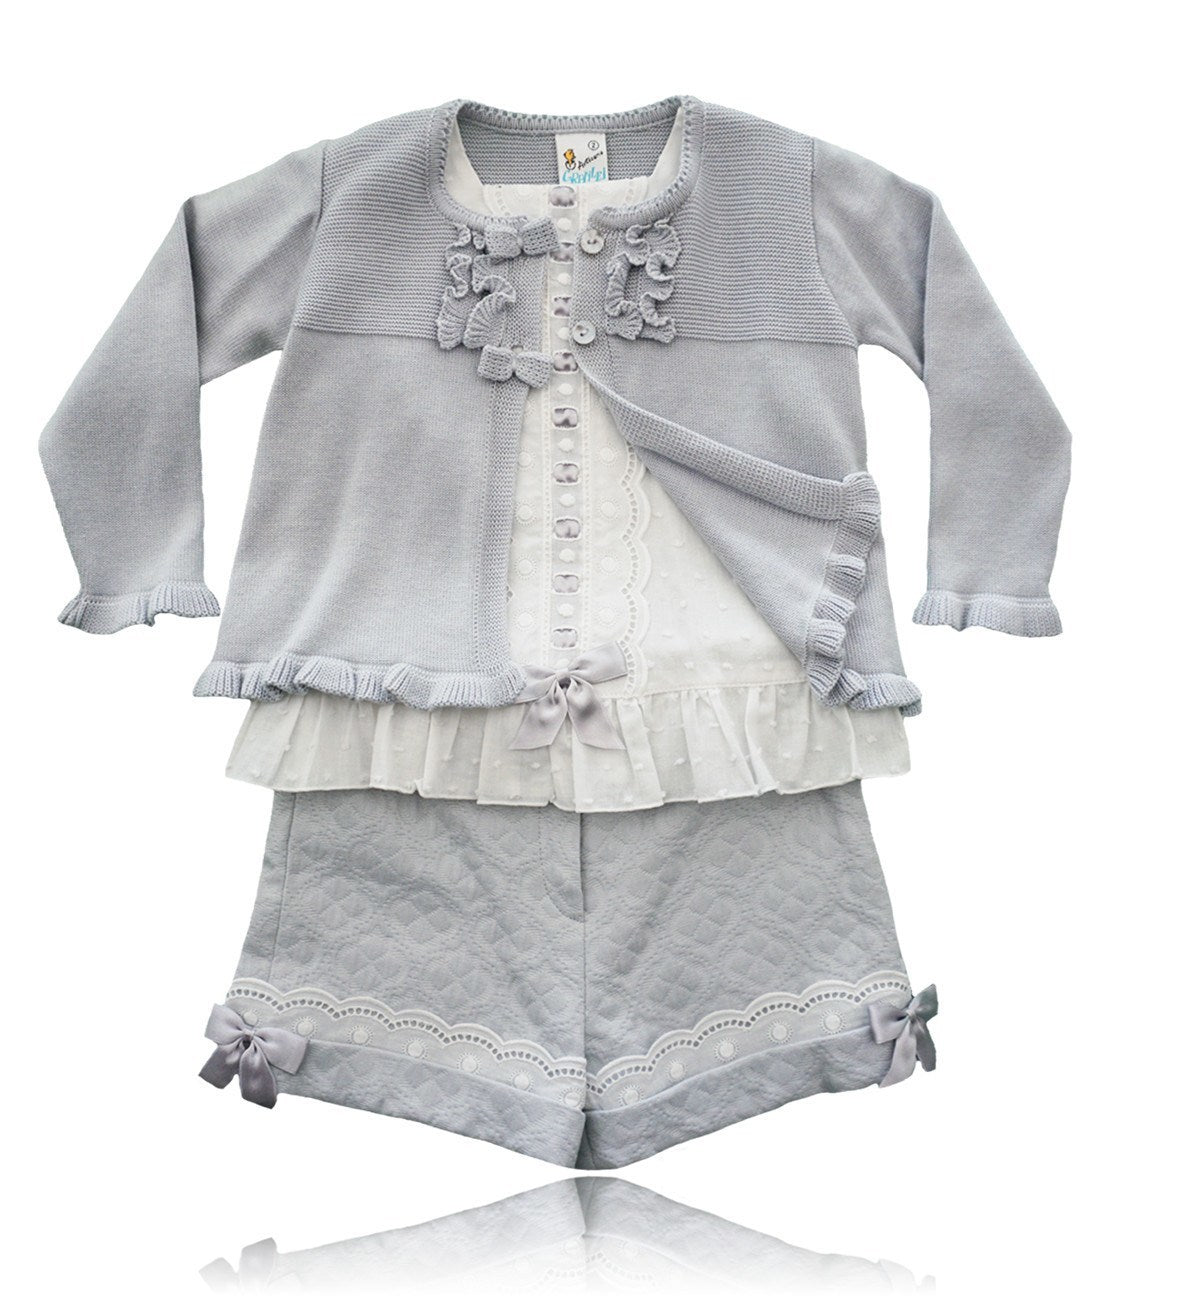 Spanish baby clothes | baby Blouse & Short set | Cardigan, blouse & short set |babymaC  - 1